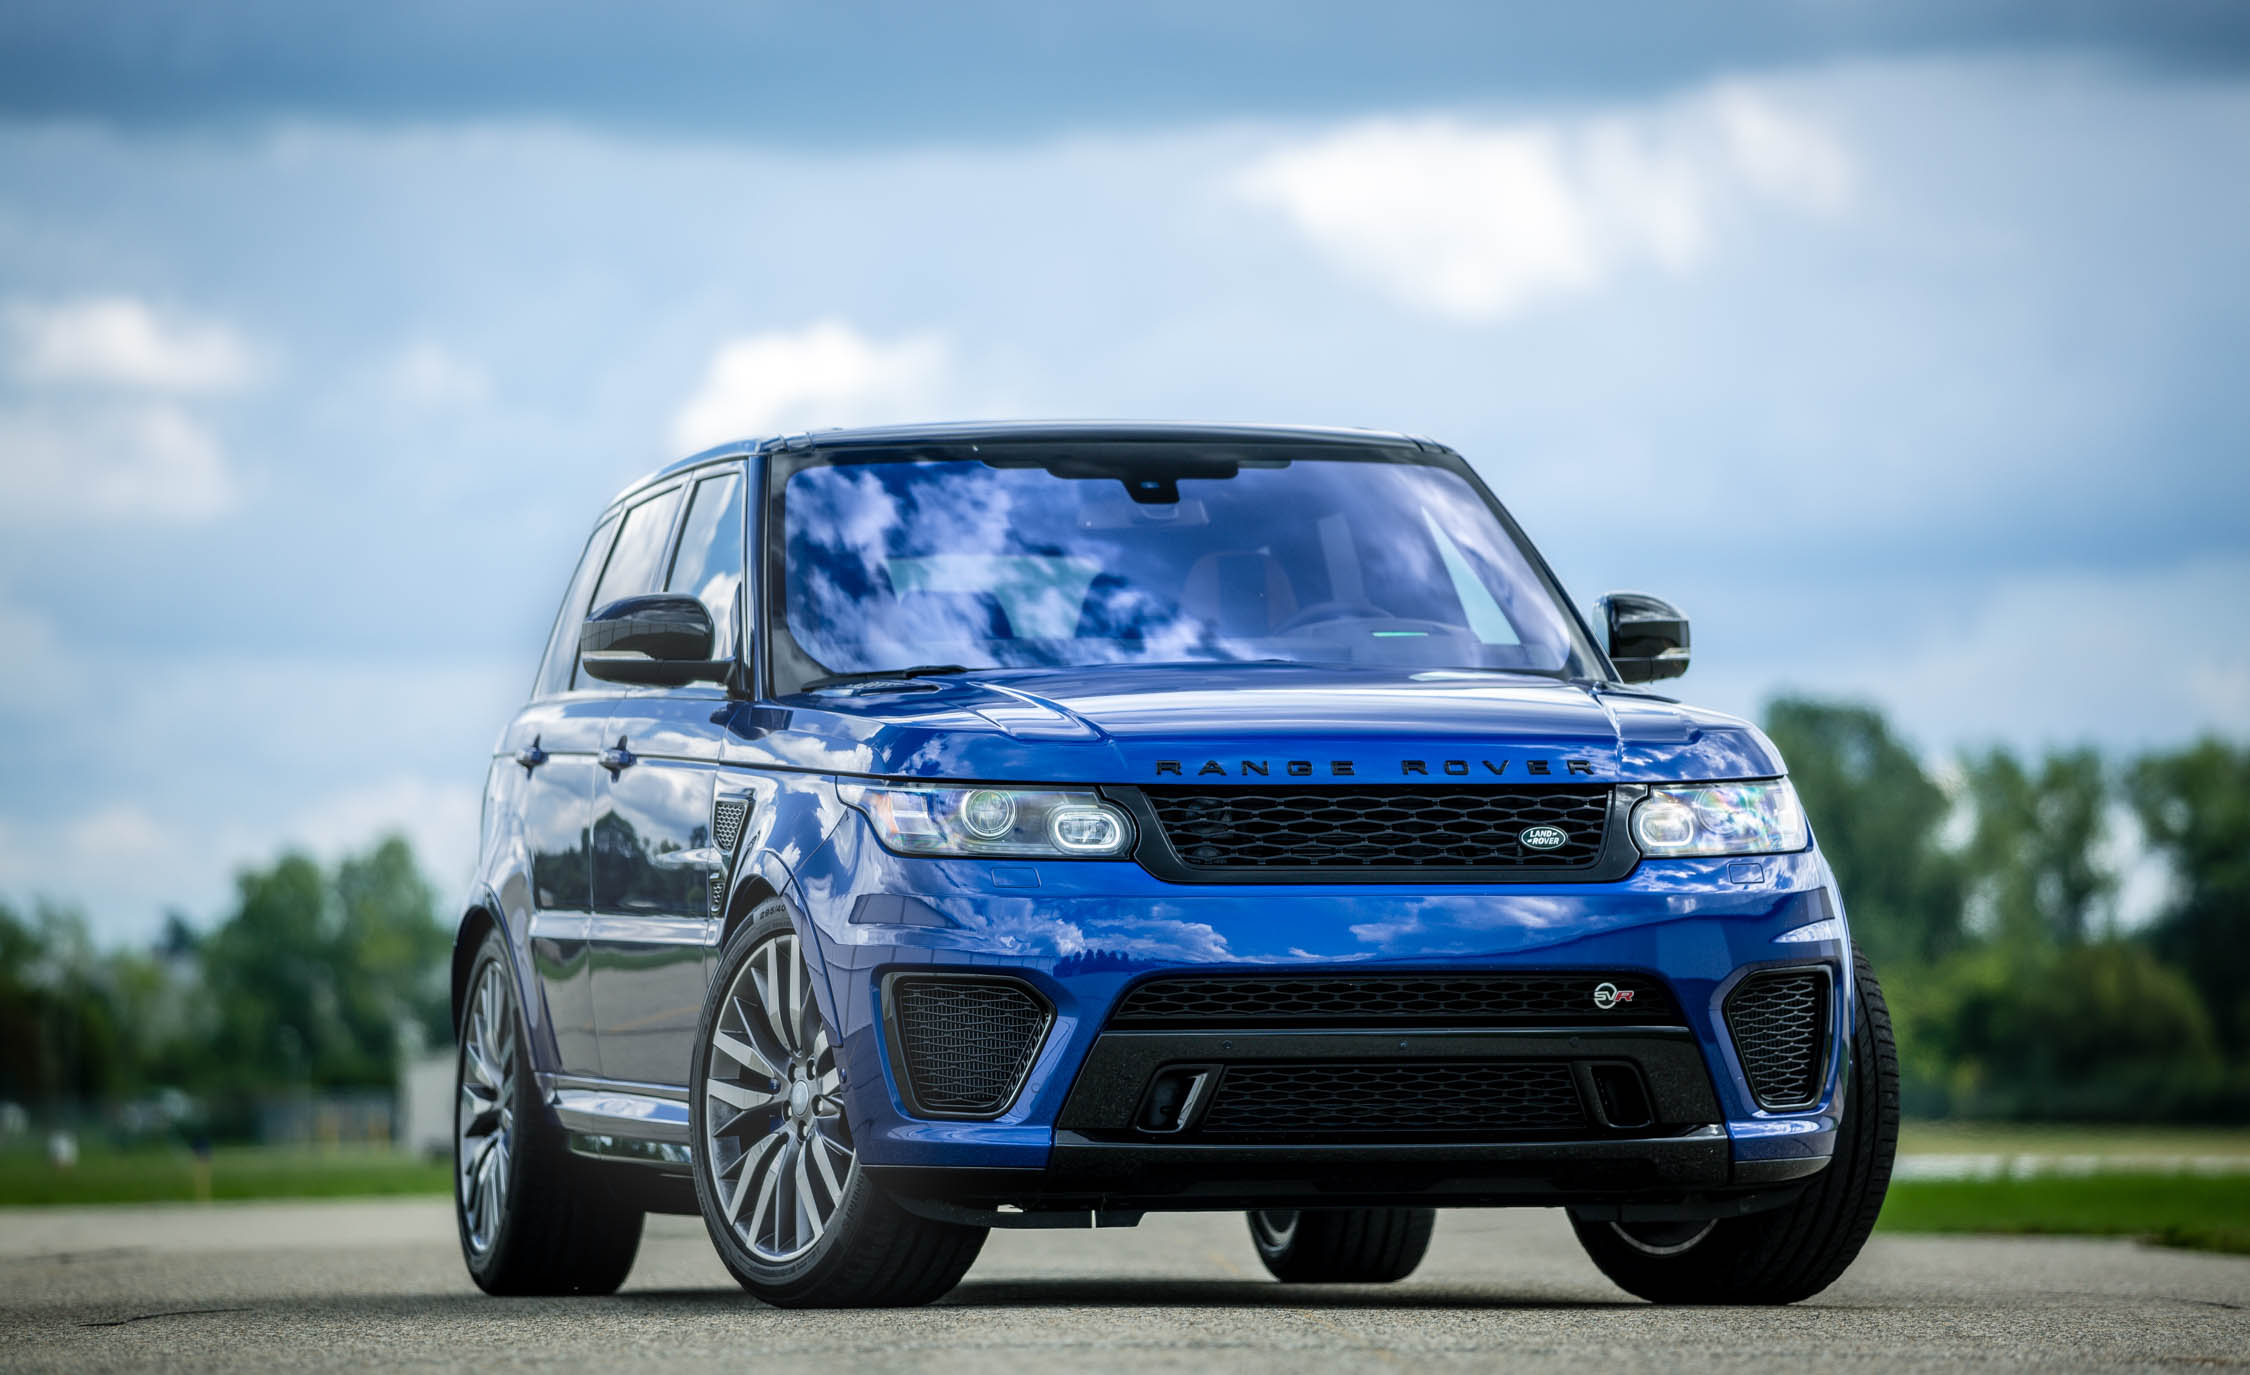 2016 Land Rover Range Rover Sport Svr Cars Exclusive